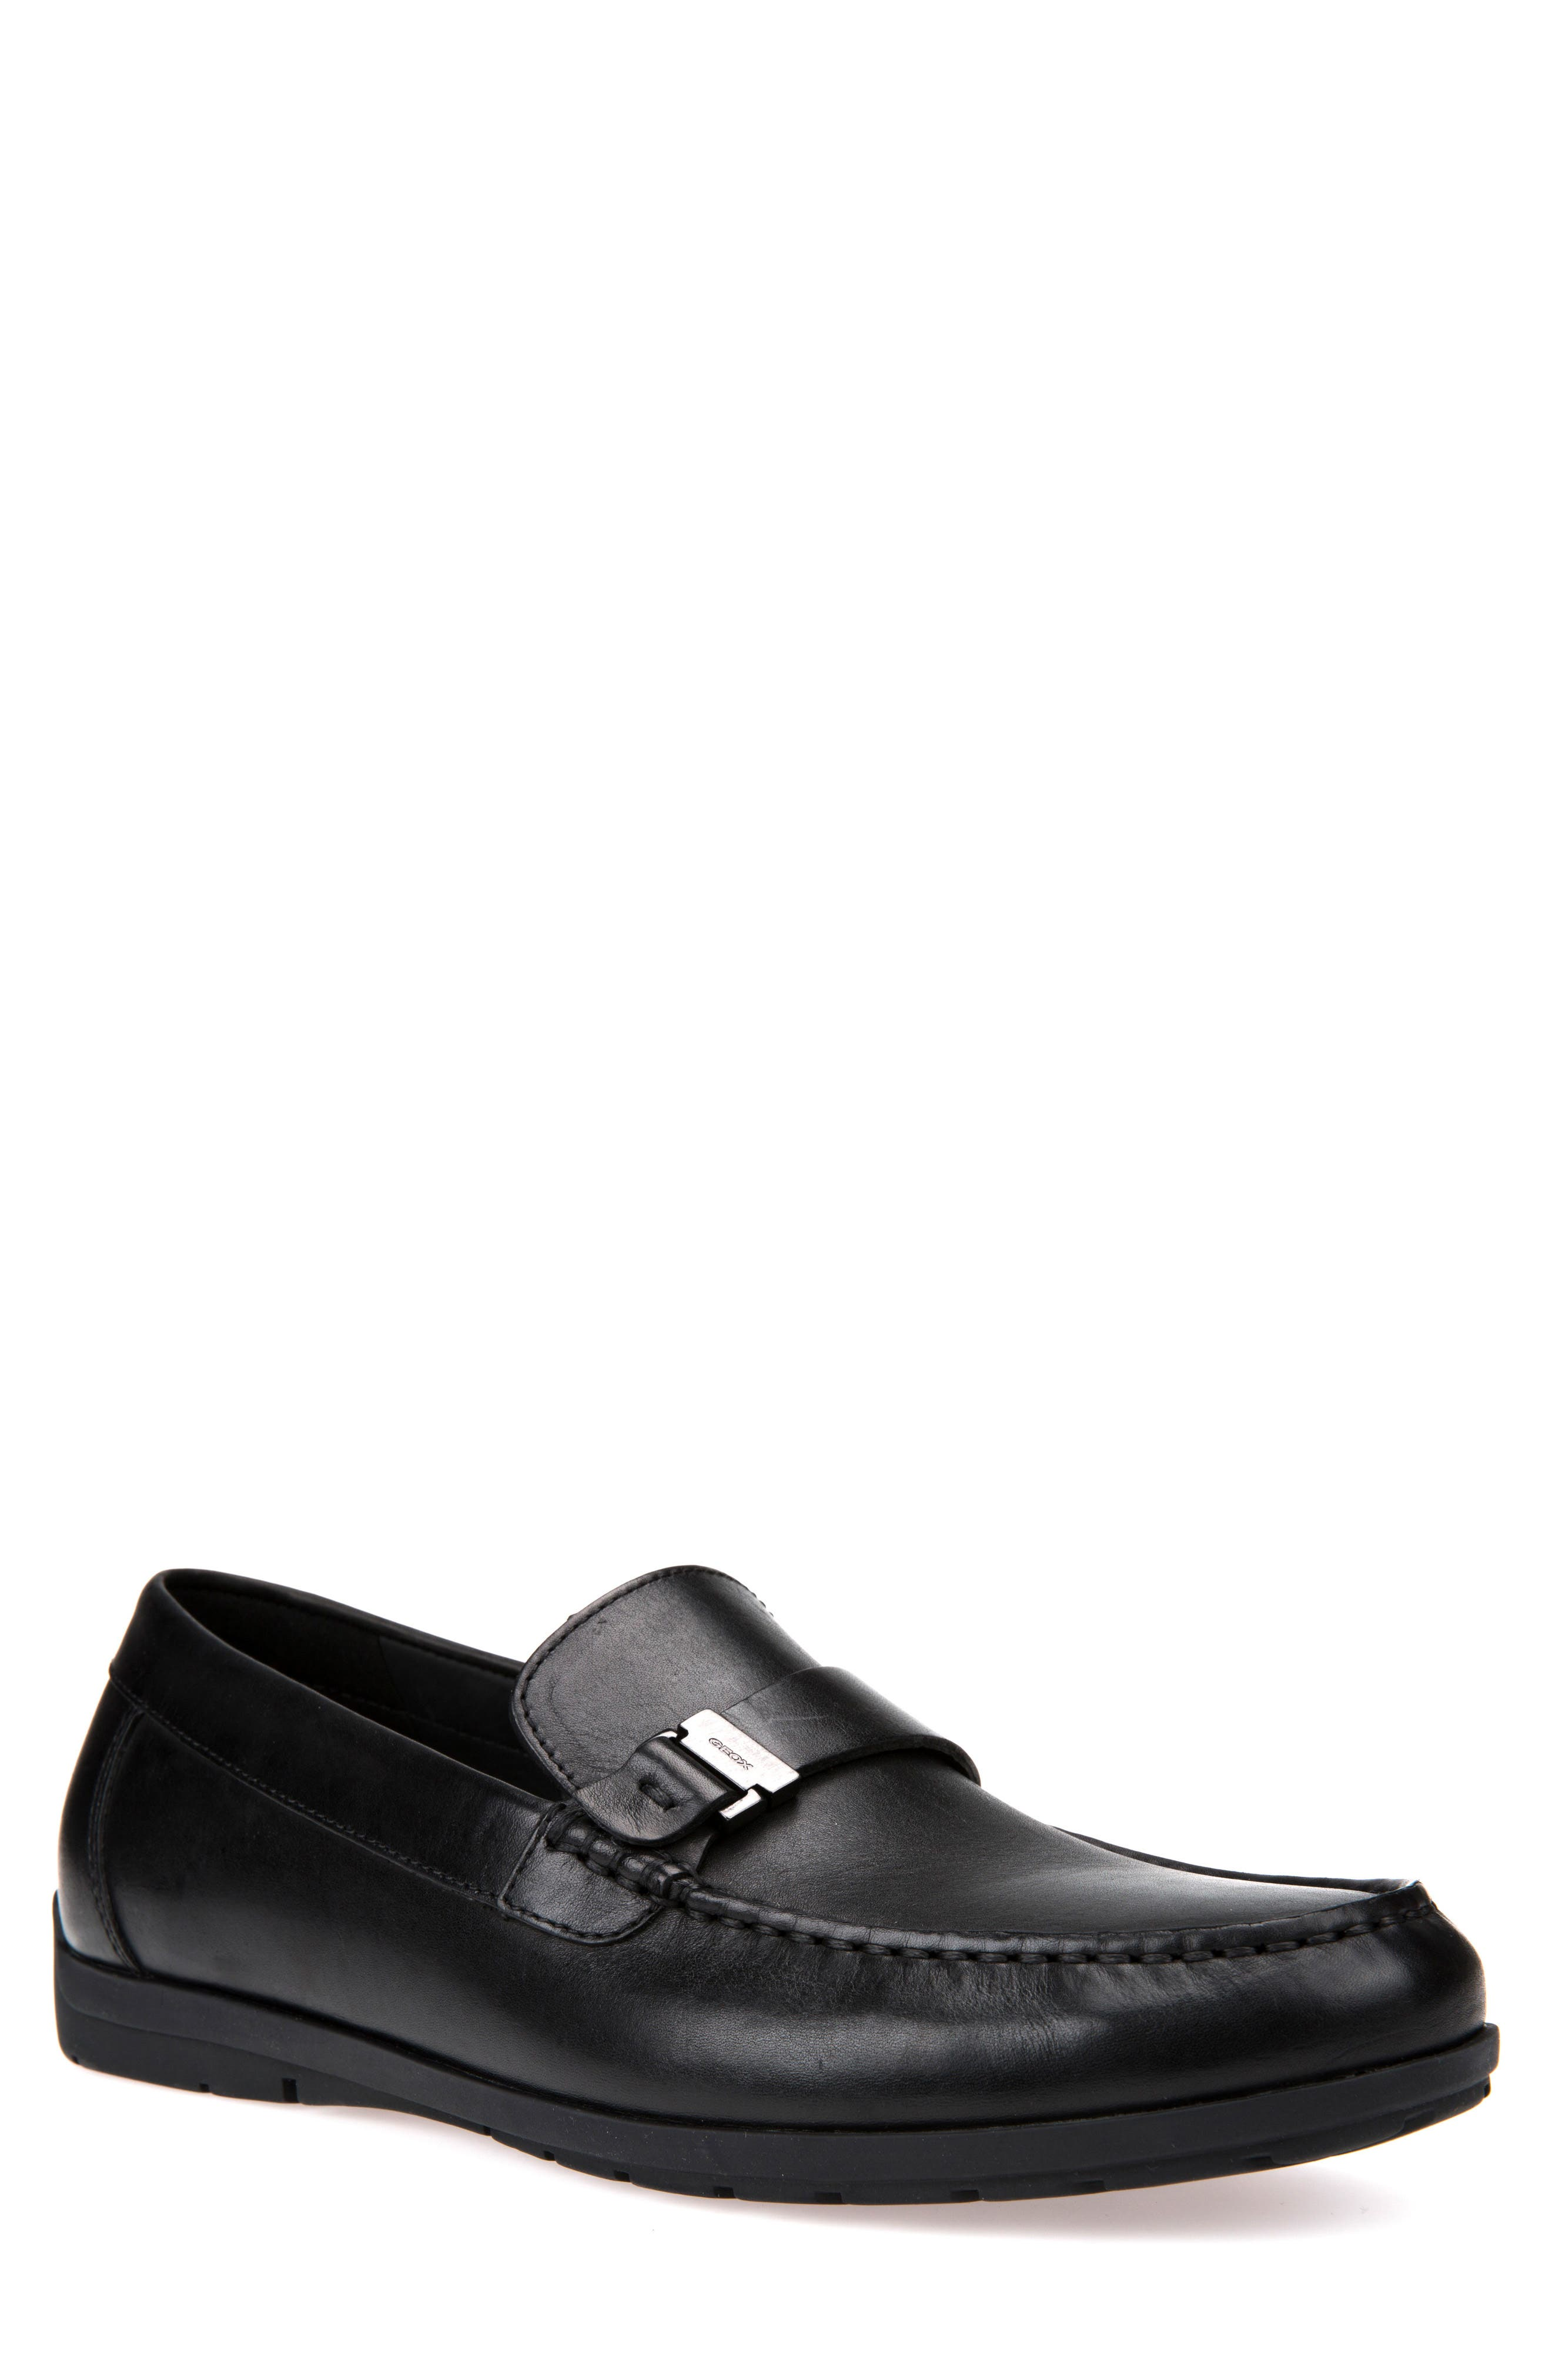 Siron W 1 Moc Toe Loafer,                         Main,                         color, BLACK LEATHER